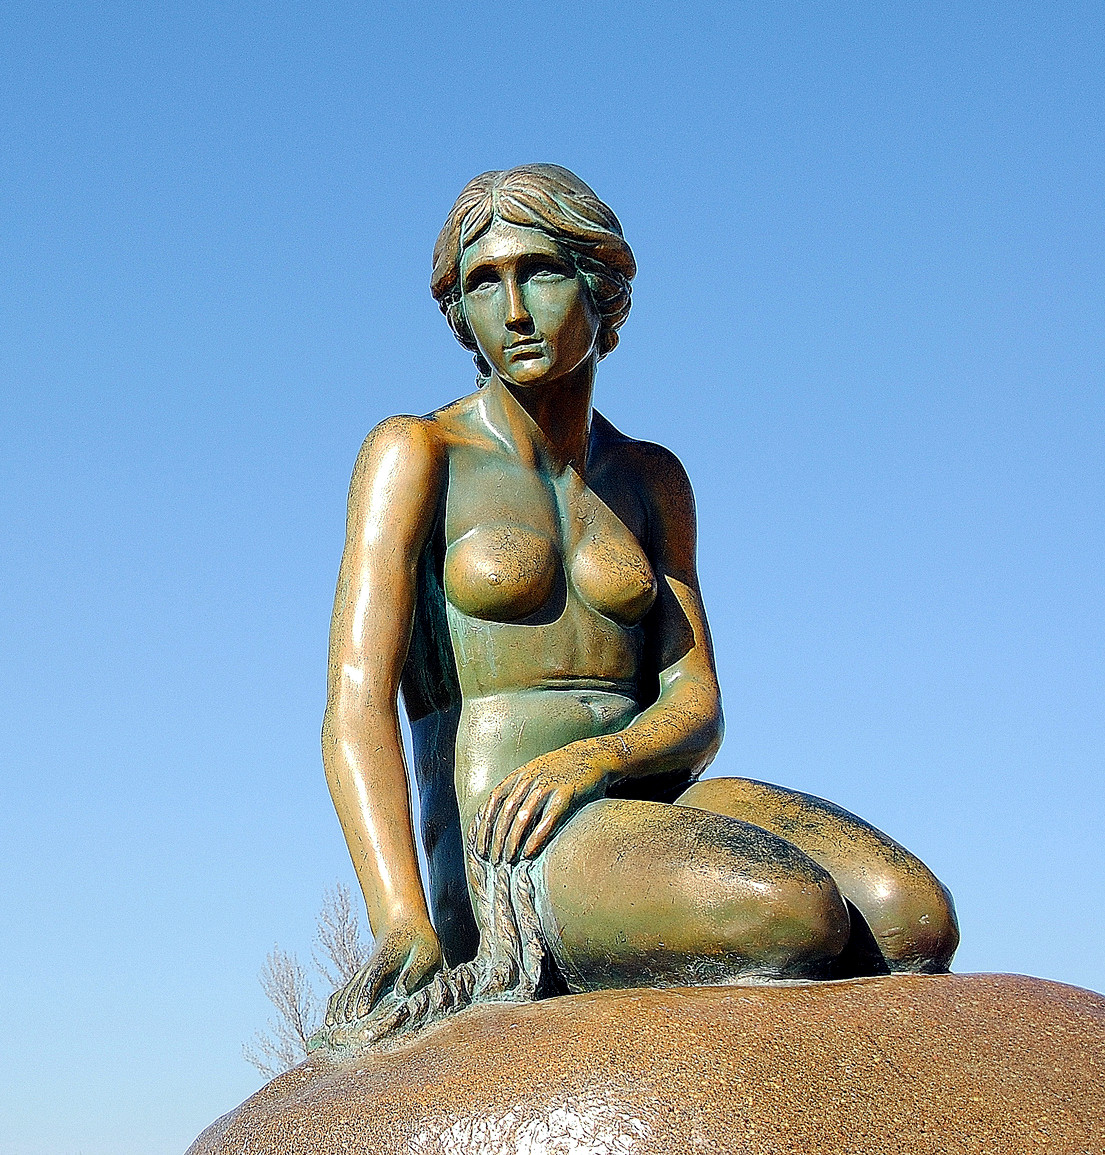 The Little Mermaid statue in Parque Europa